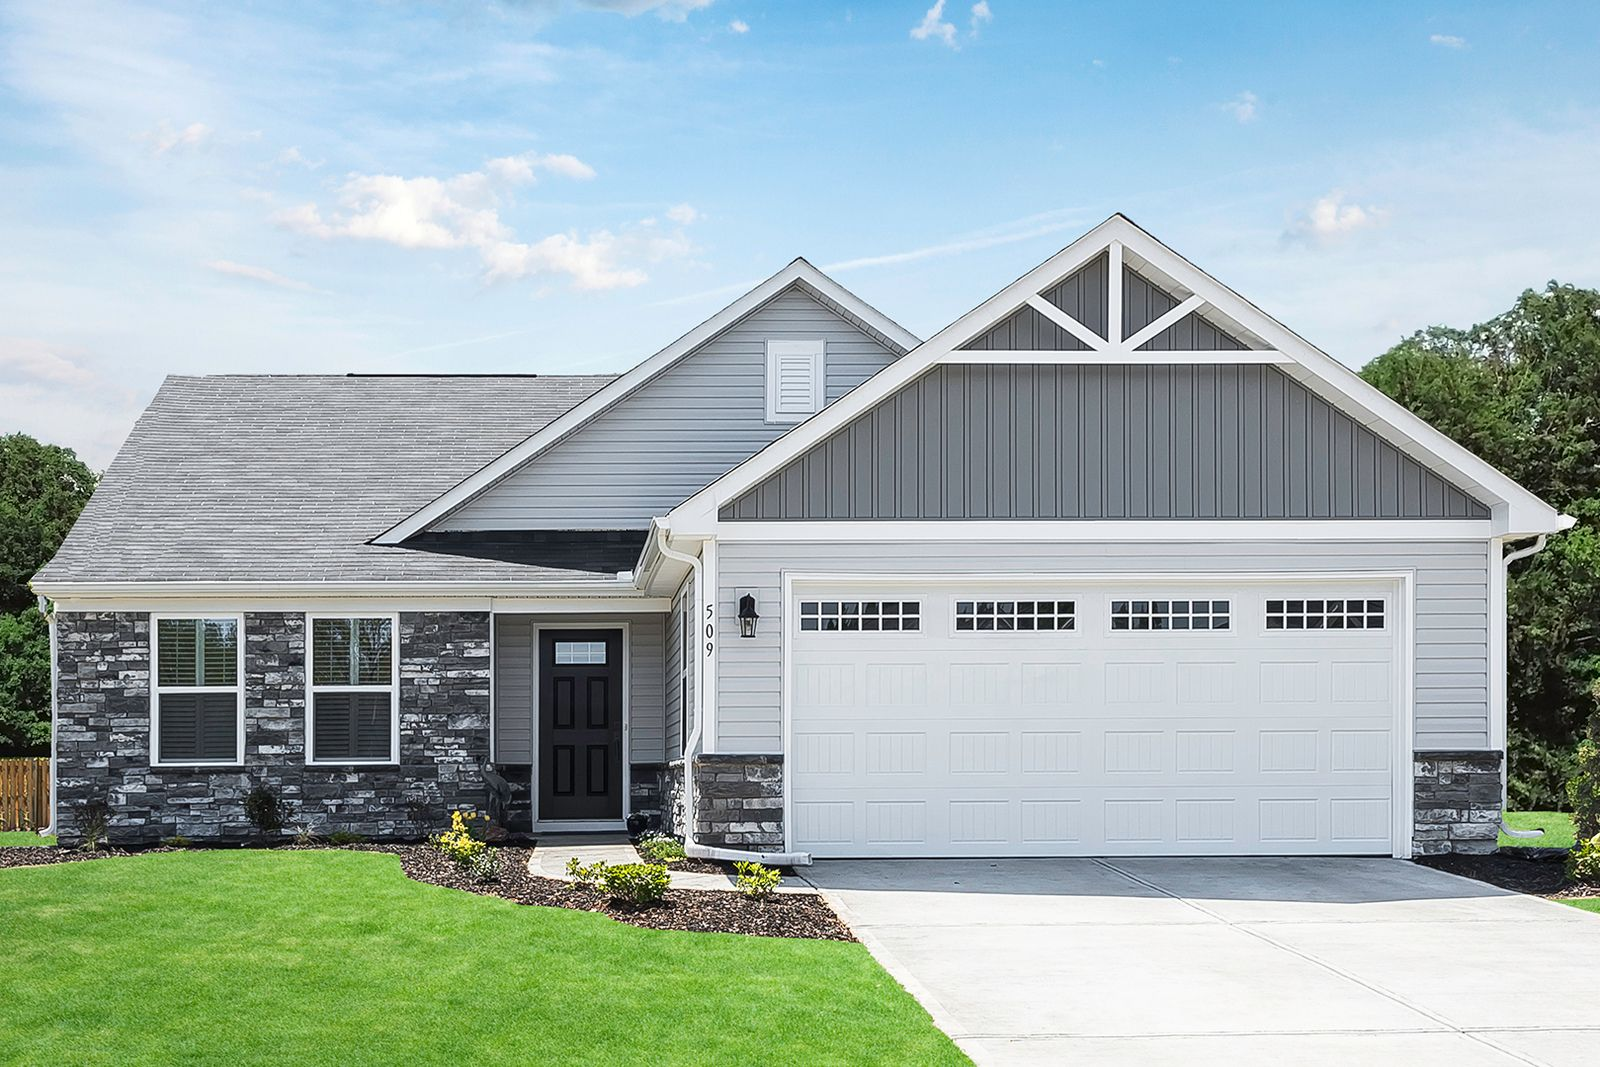 Welcome home to CARRIAGE TRAILS RANCHES!:Lowest-price new construction ranches in Tipp City near I-70 & WPAFB. Lawn care included! Tree-lined homesites with walking paths. Low taxes—from the $220s.Click here toschedule your visit day!